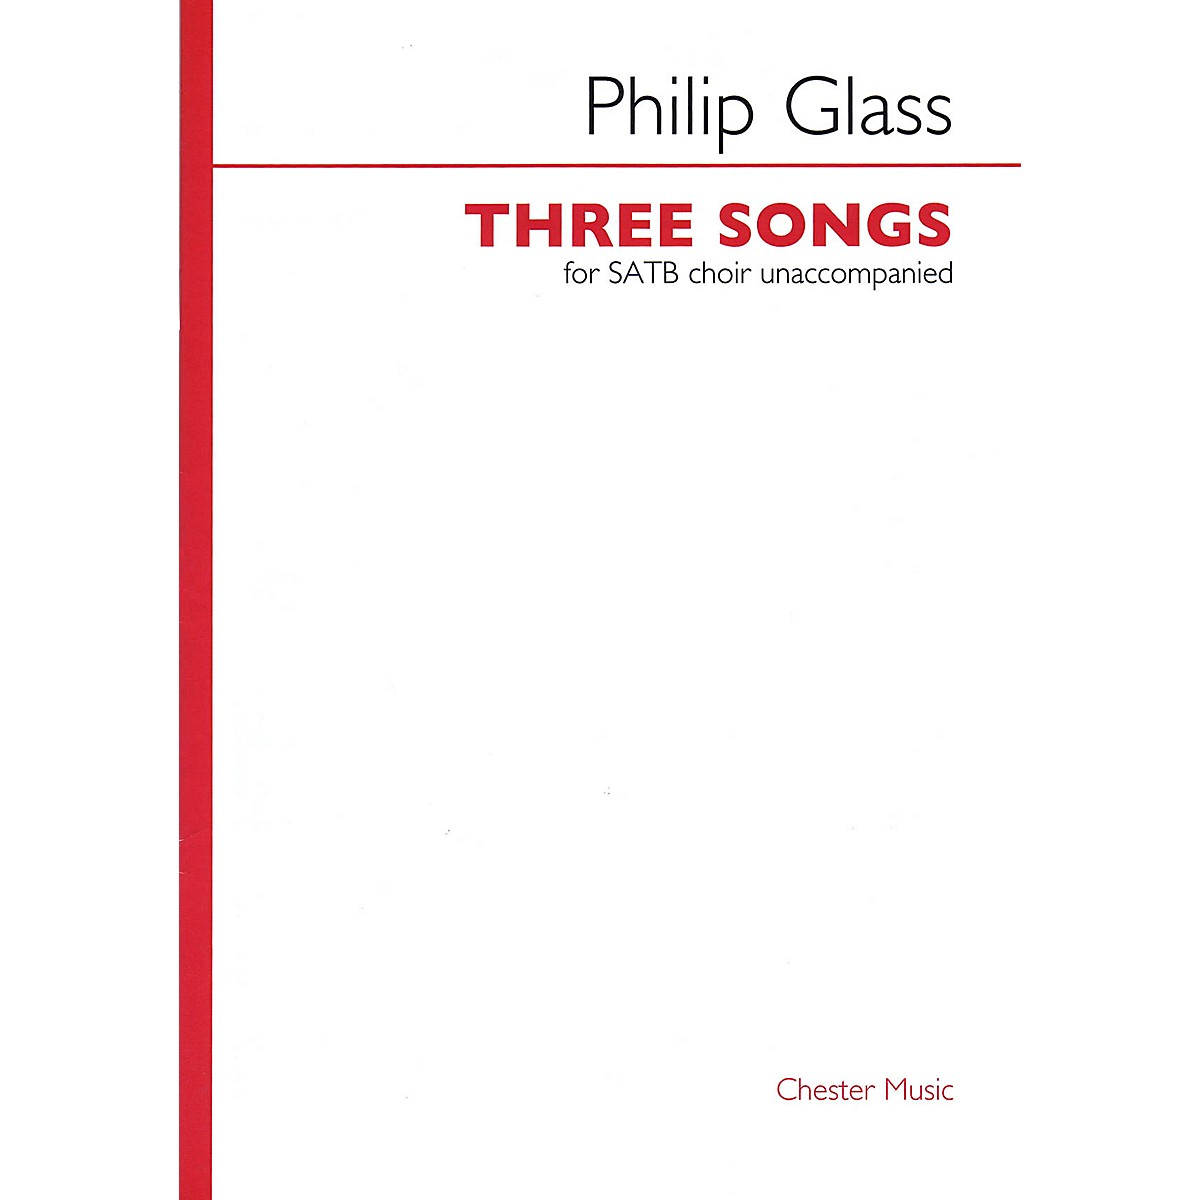 Chester Music Three Songs (for SATB unaccompanied choir) SATB a cappella Composed by Philip Glass